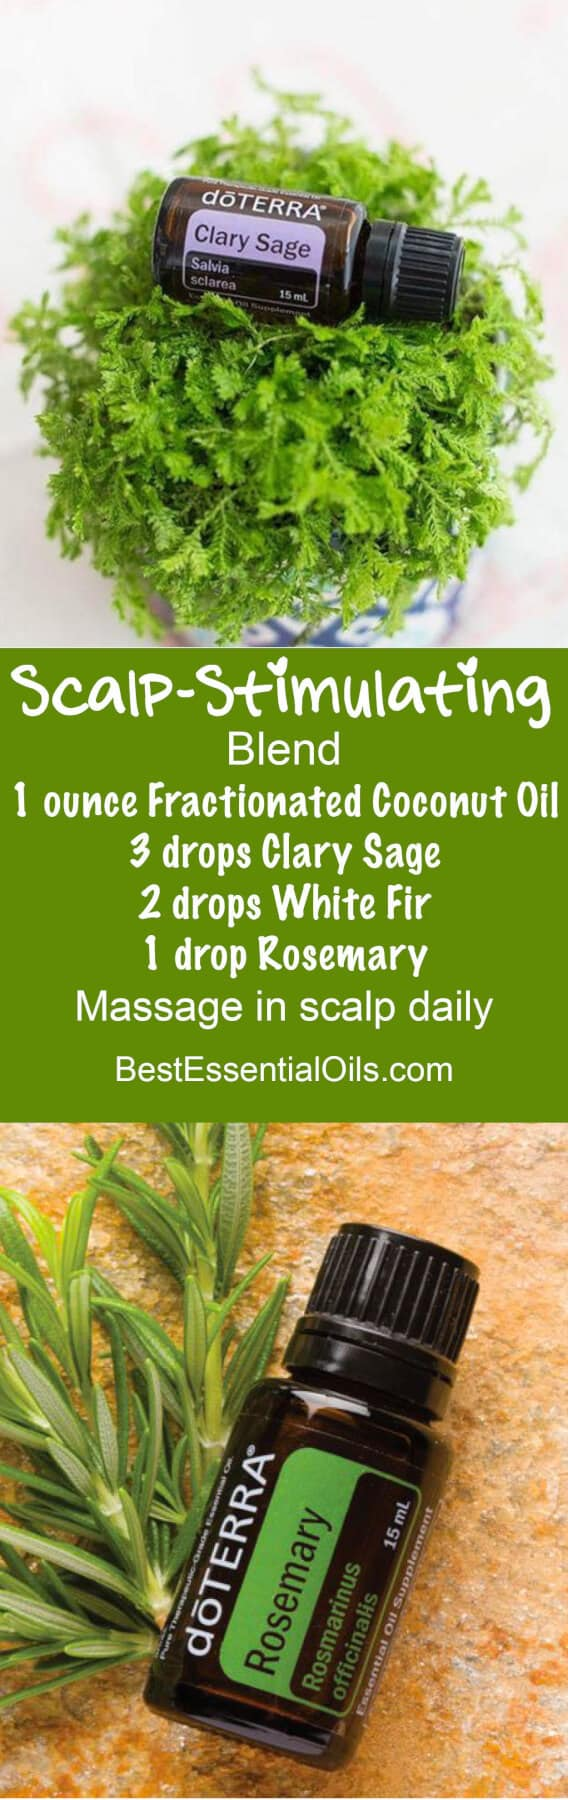 Scalp-Stimulating doTERRA Blend doTERRA hair care